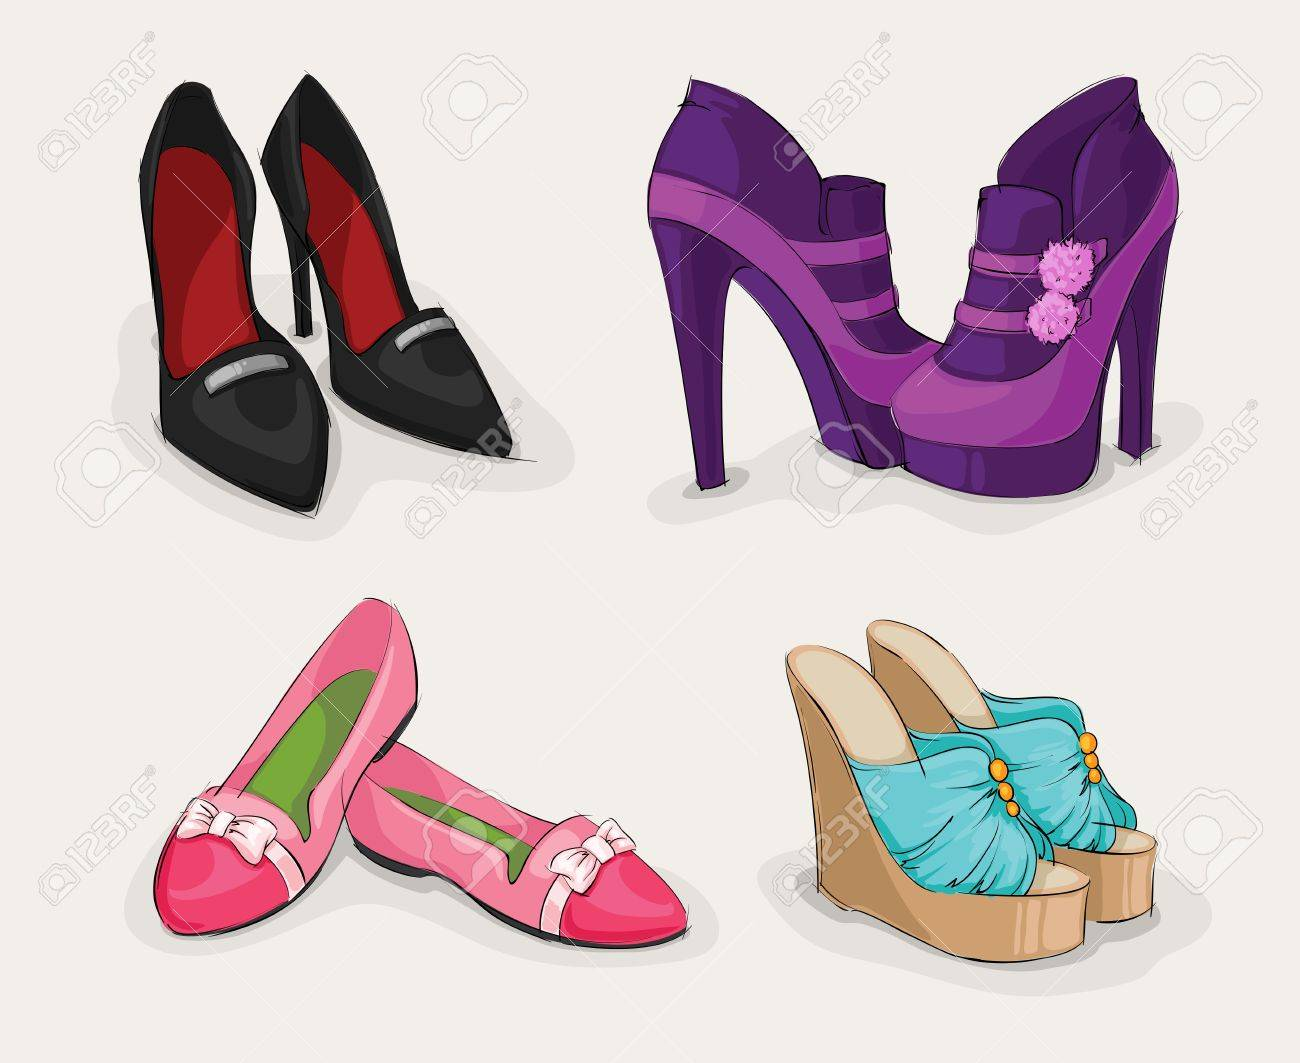 Boots fashion pic boots clip art - Fashion Collection Of Classic Woman S Black Shoes On High Heels Ankle Boots And Sandals Isolated Illustration